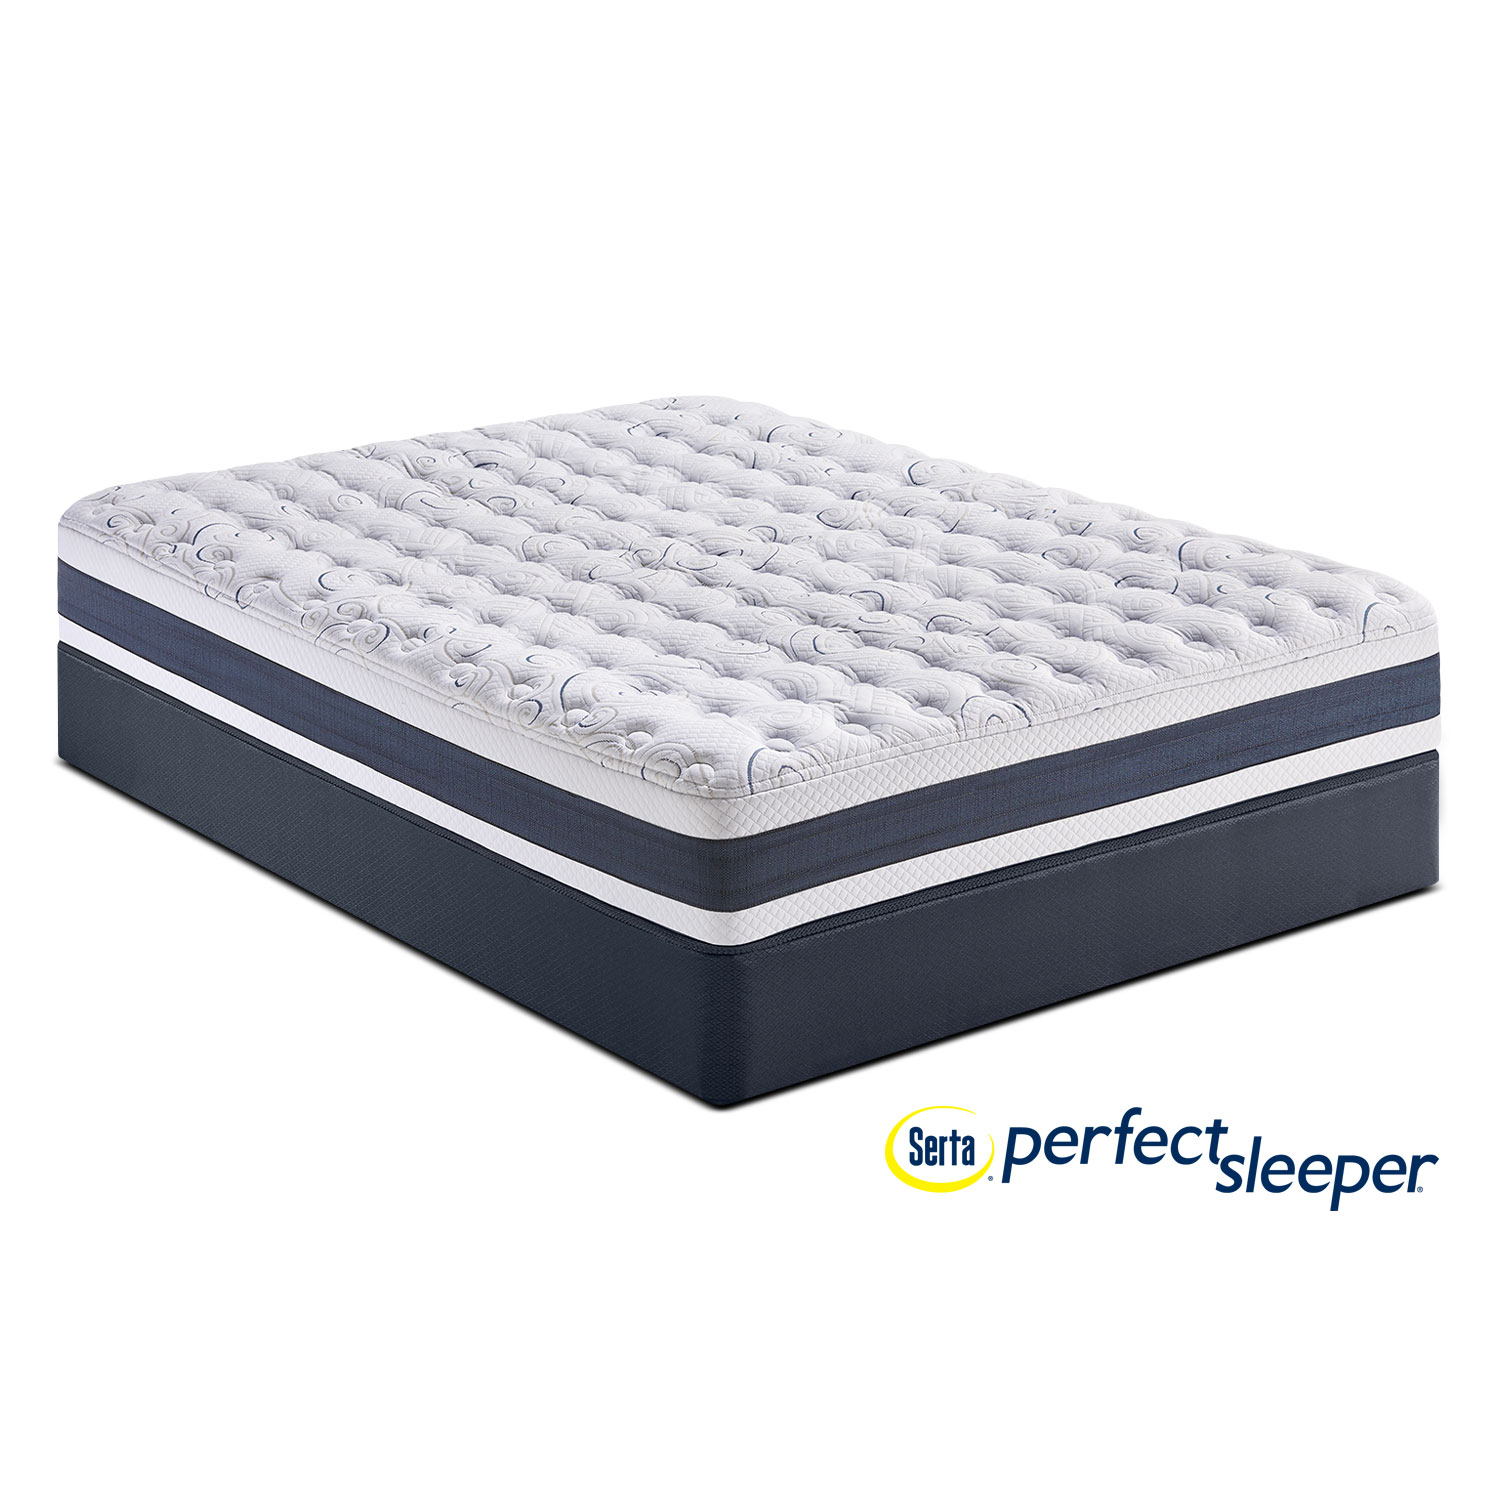 Mattresses and Bedding - Strathfield Firm Full Mattress and Low-Profile Foundation Set